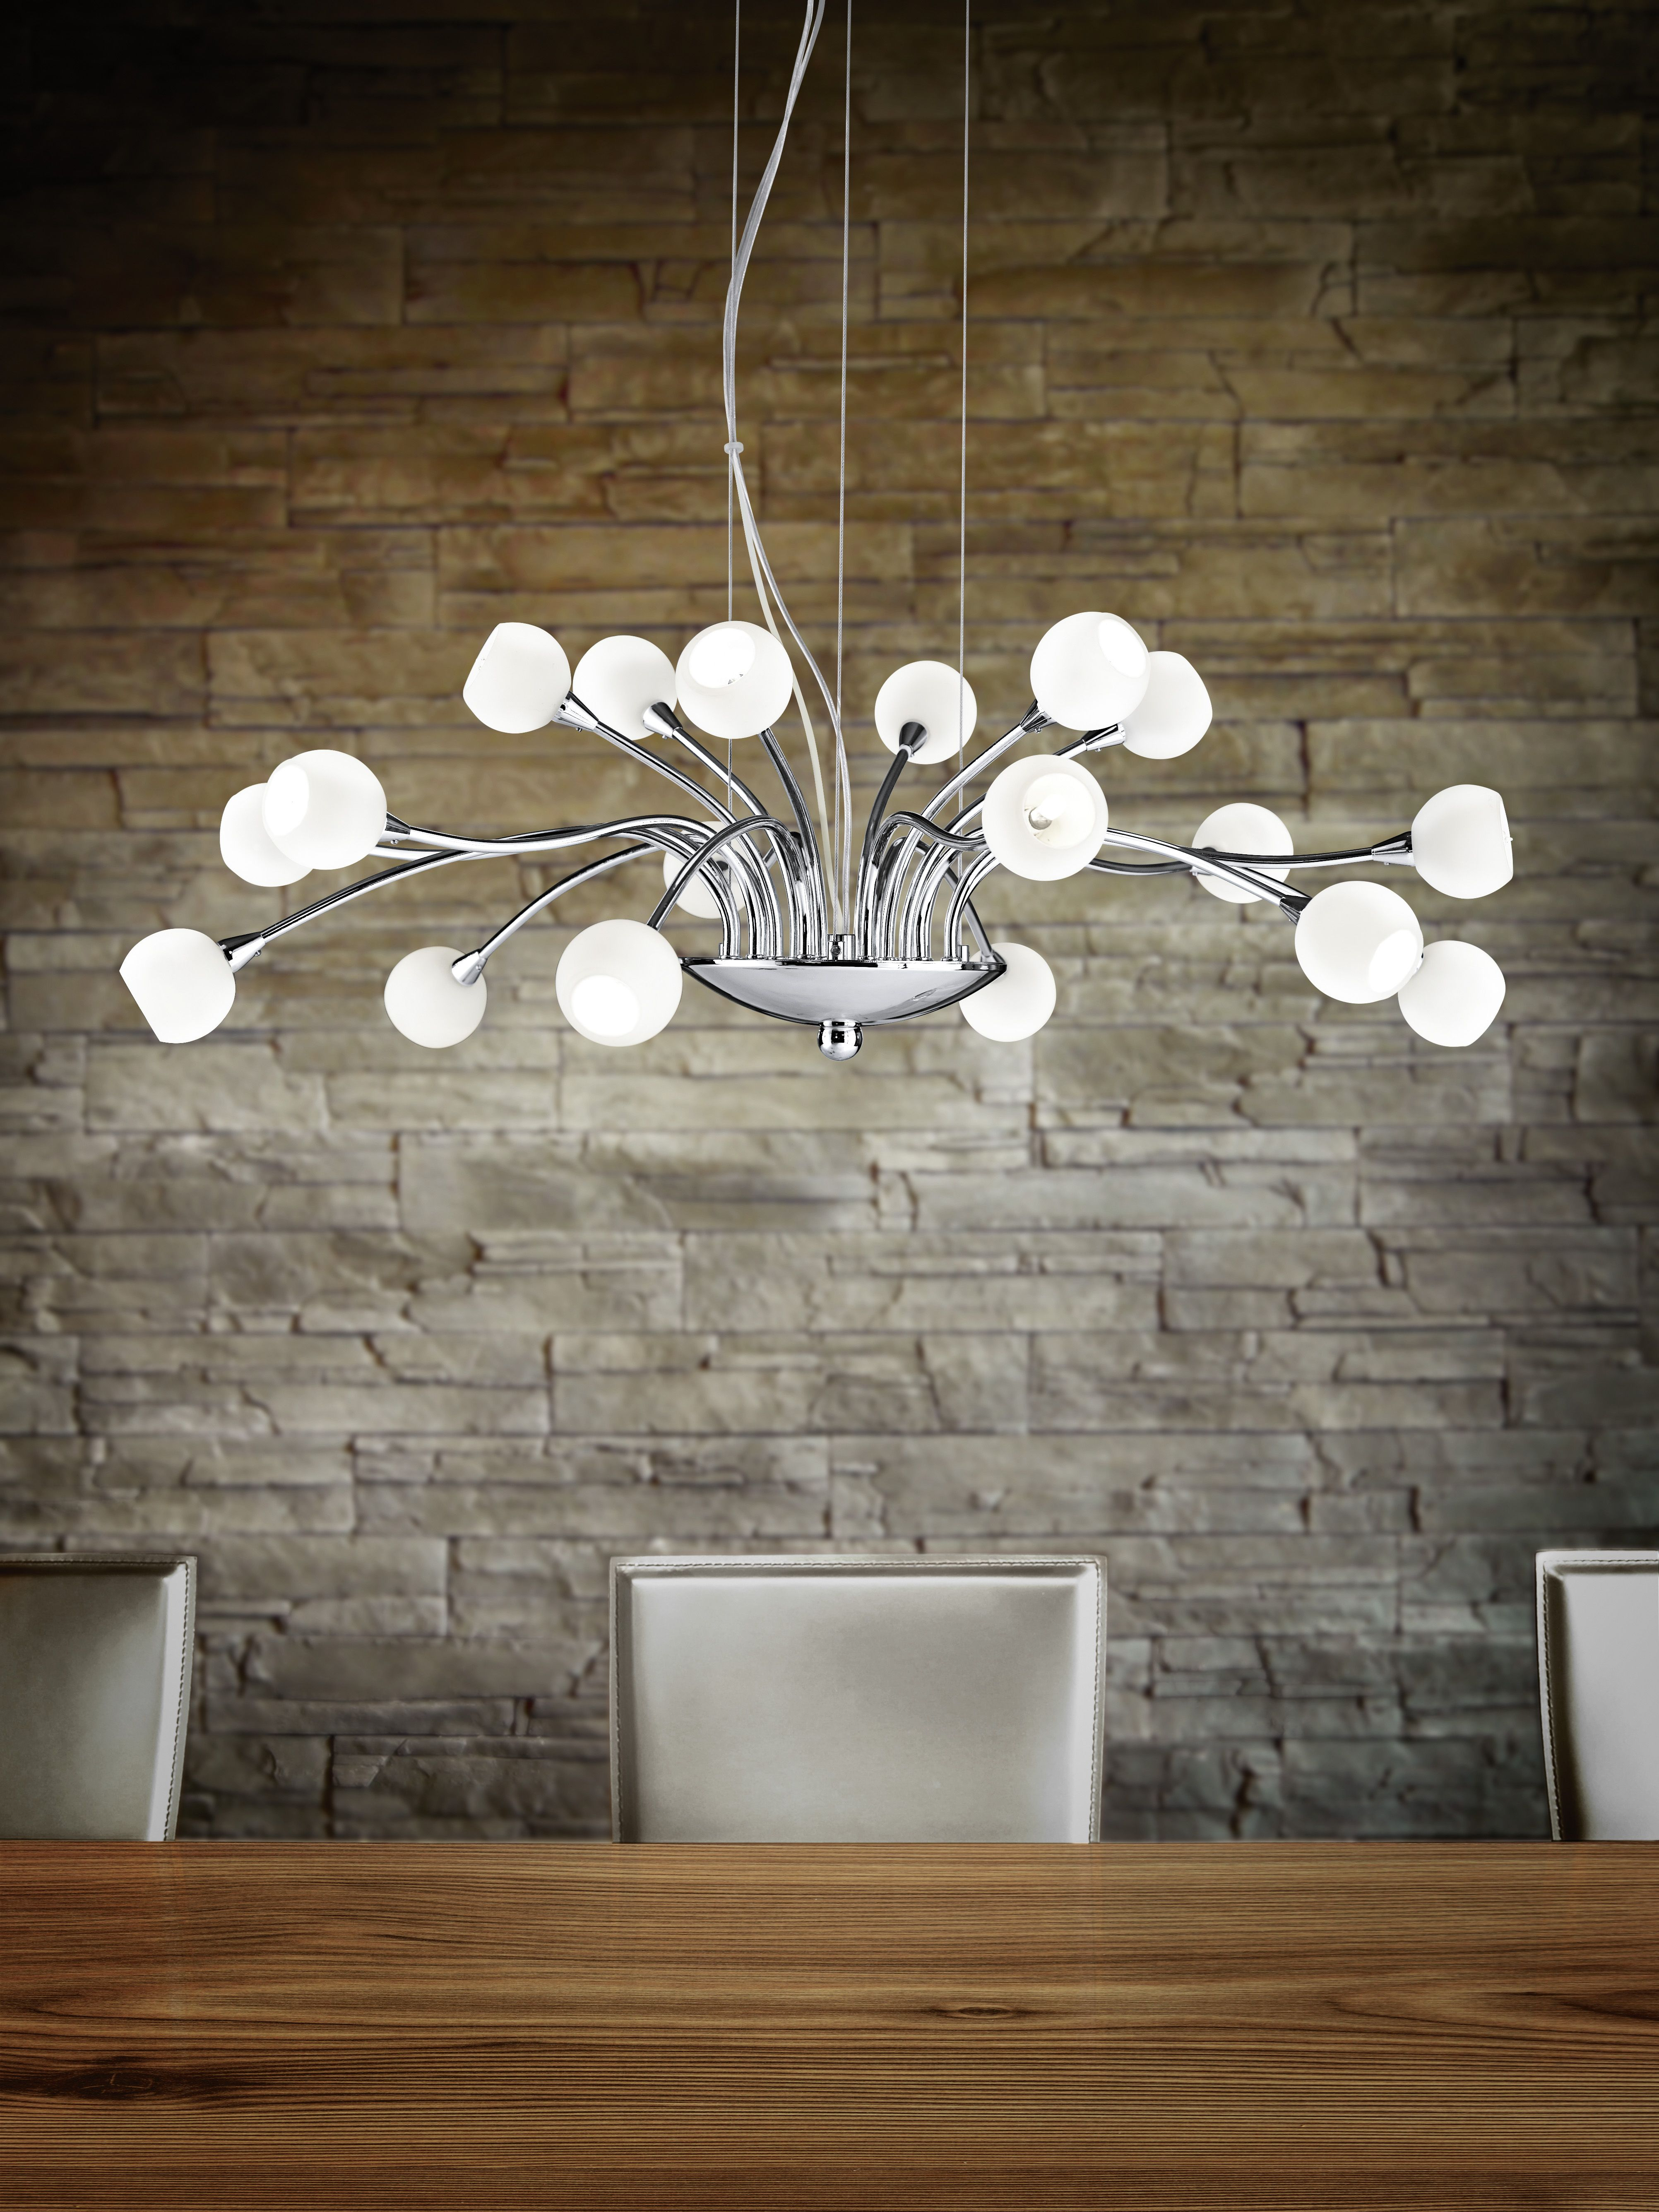 Eglo Lighting Romano 18 Lamp Pendant Light with Opal Glass & Steel Base